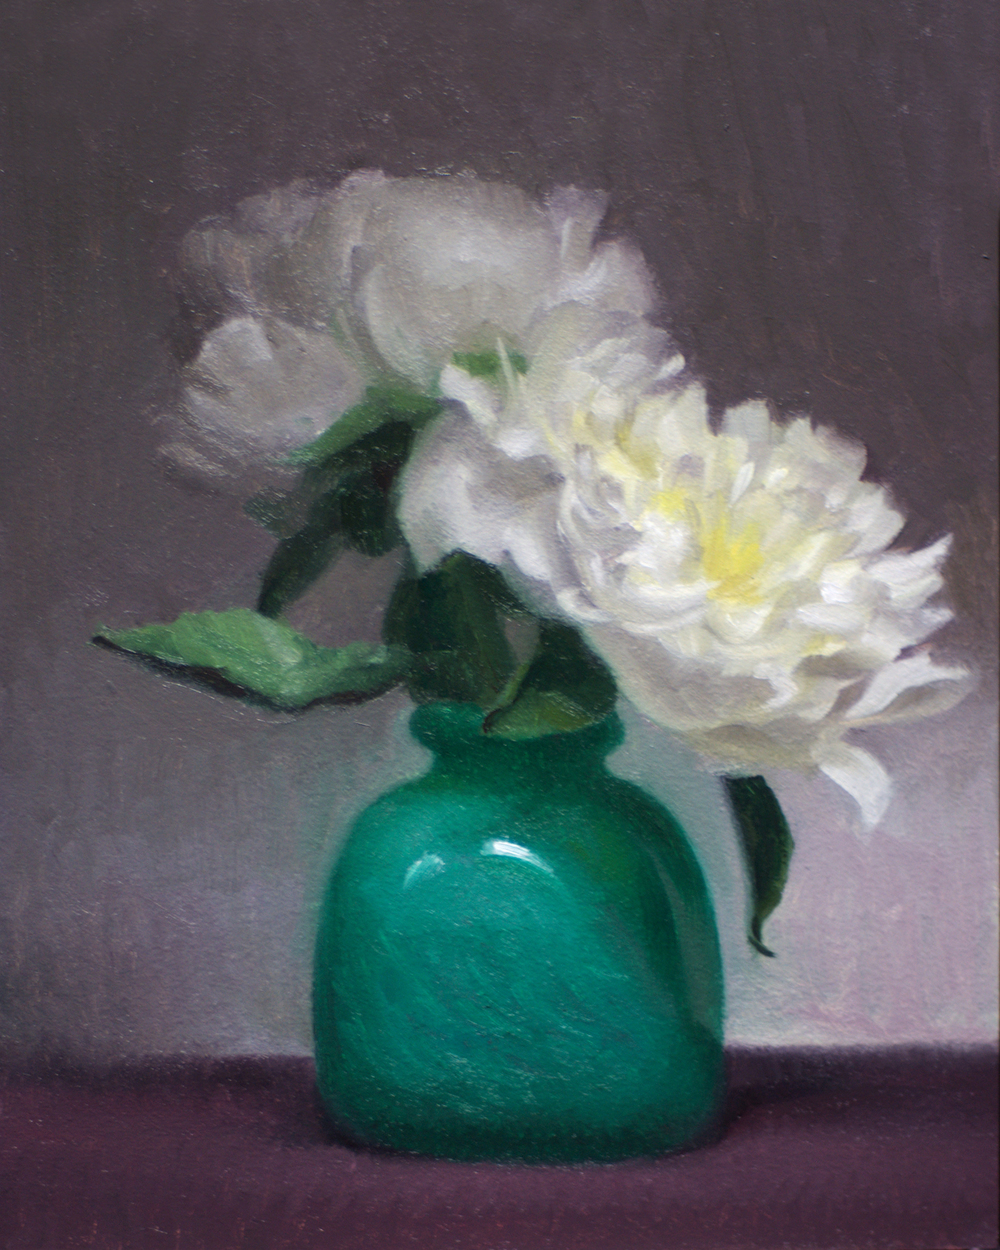 peonies_green_pot_150.jpg